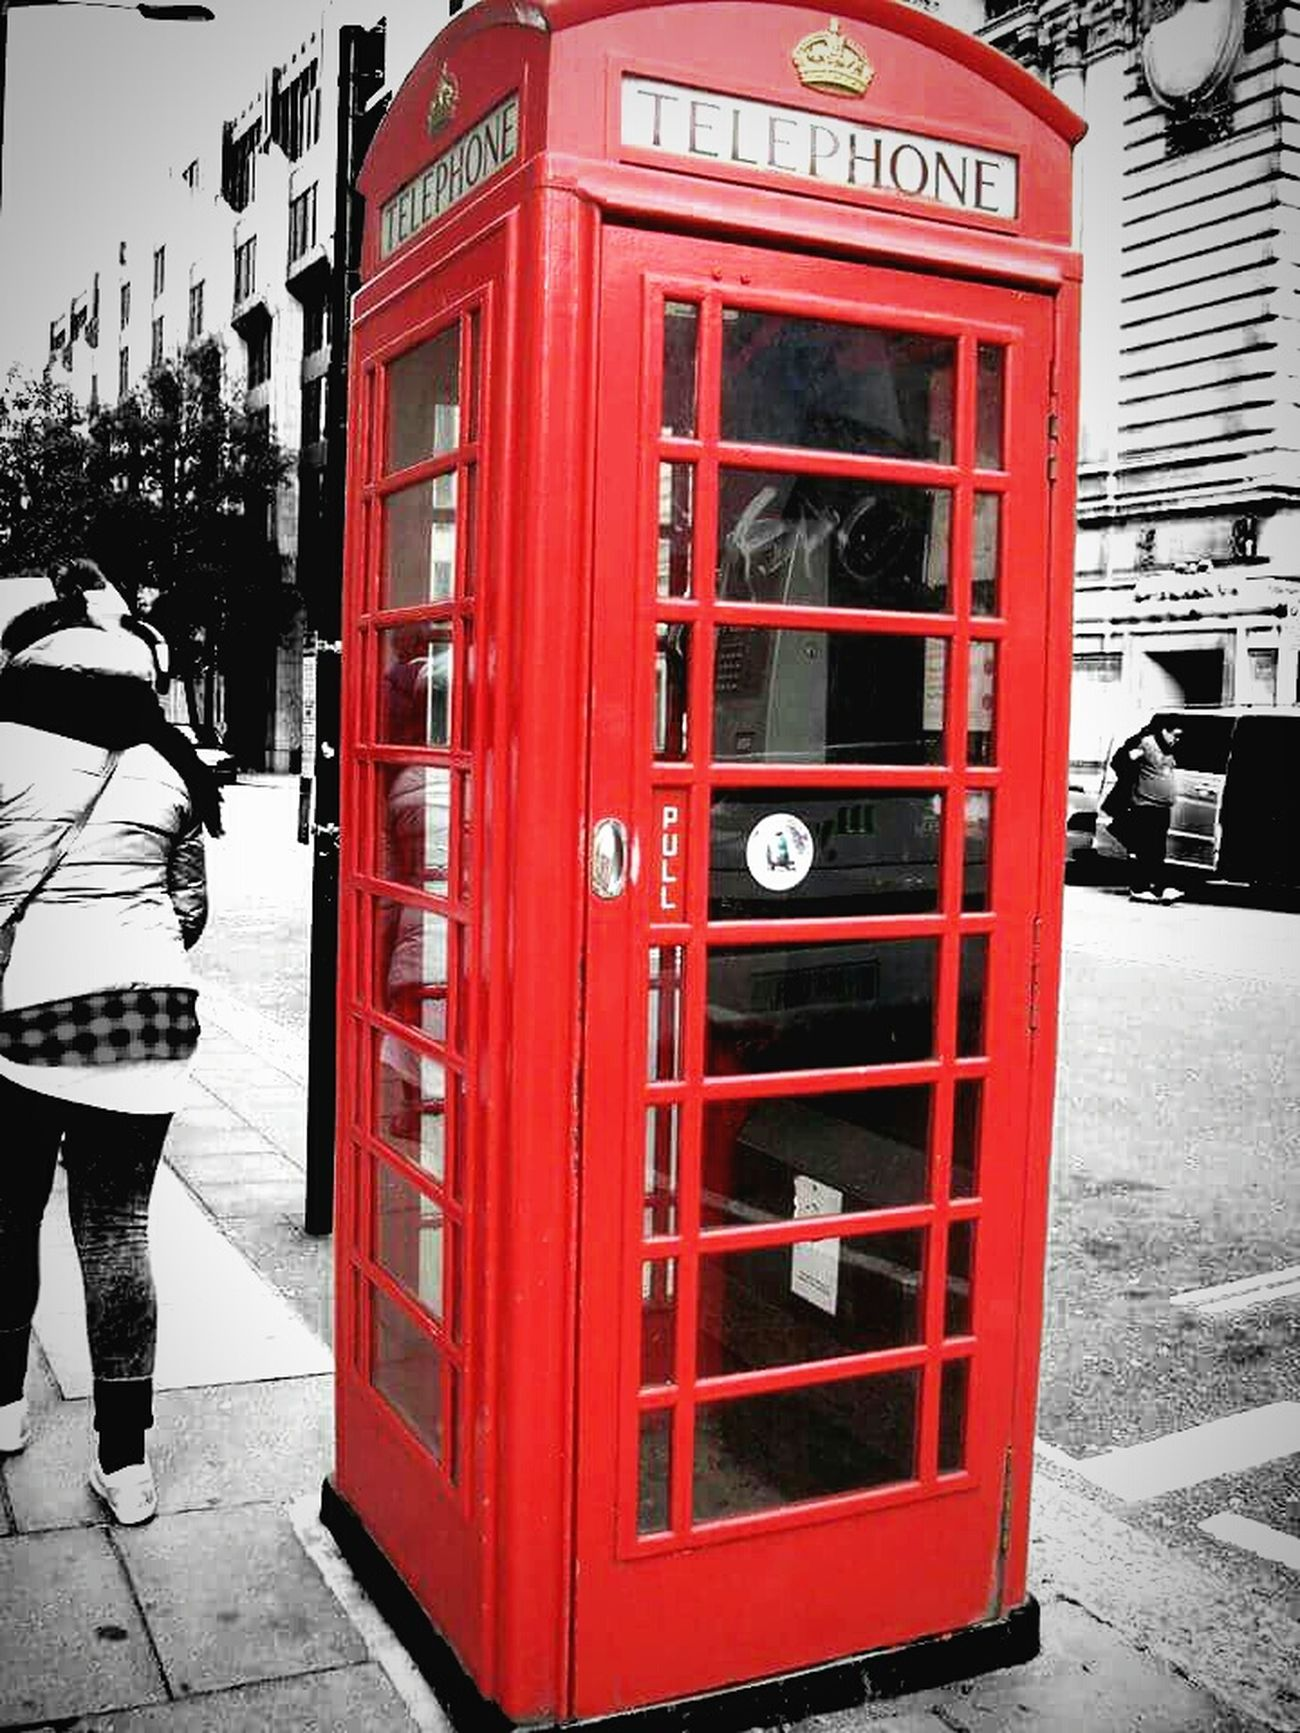 Outdoors Day Telephone Booth Architecture No People Red Blackandwhite Focus On Foreground Photography ♥ Light Effect EyeEm Gallery EyeEm Best Shots - Nature London London Streets Hobbyphotography Photos Around You EyeEm Photomania Cultures City Architecture